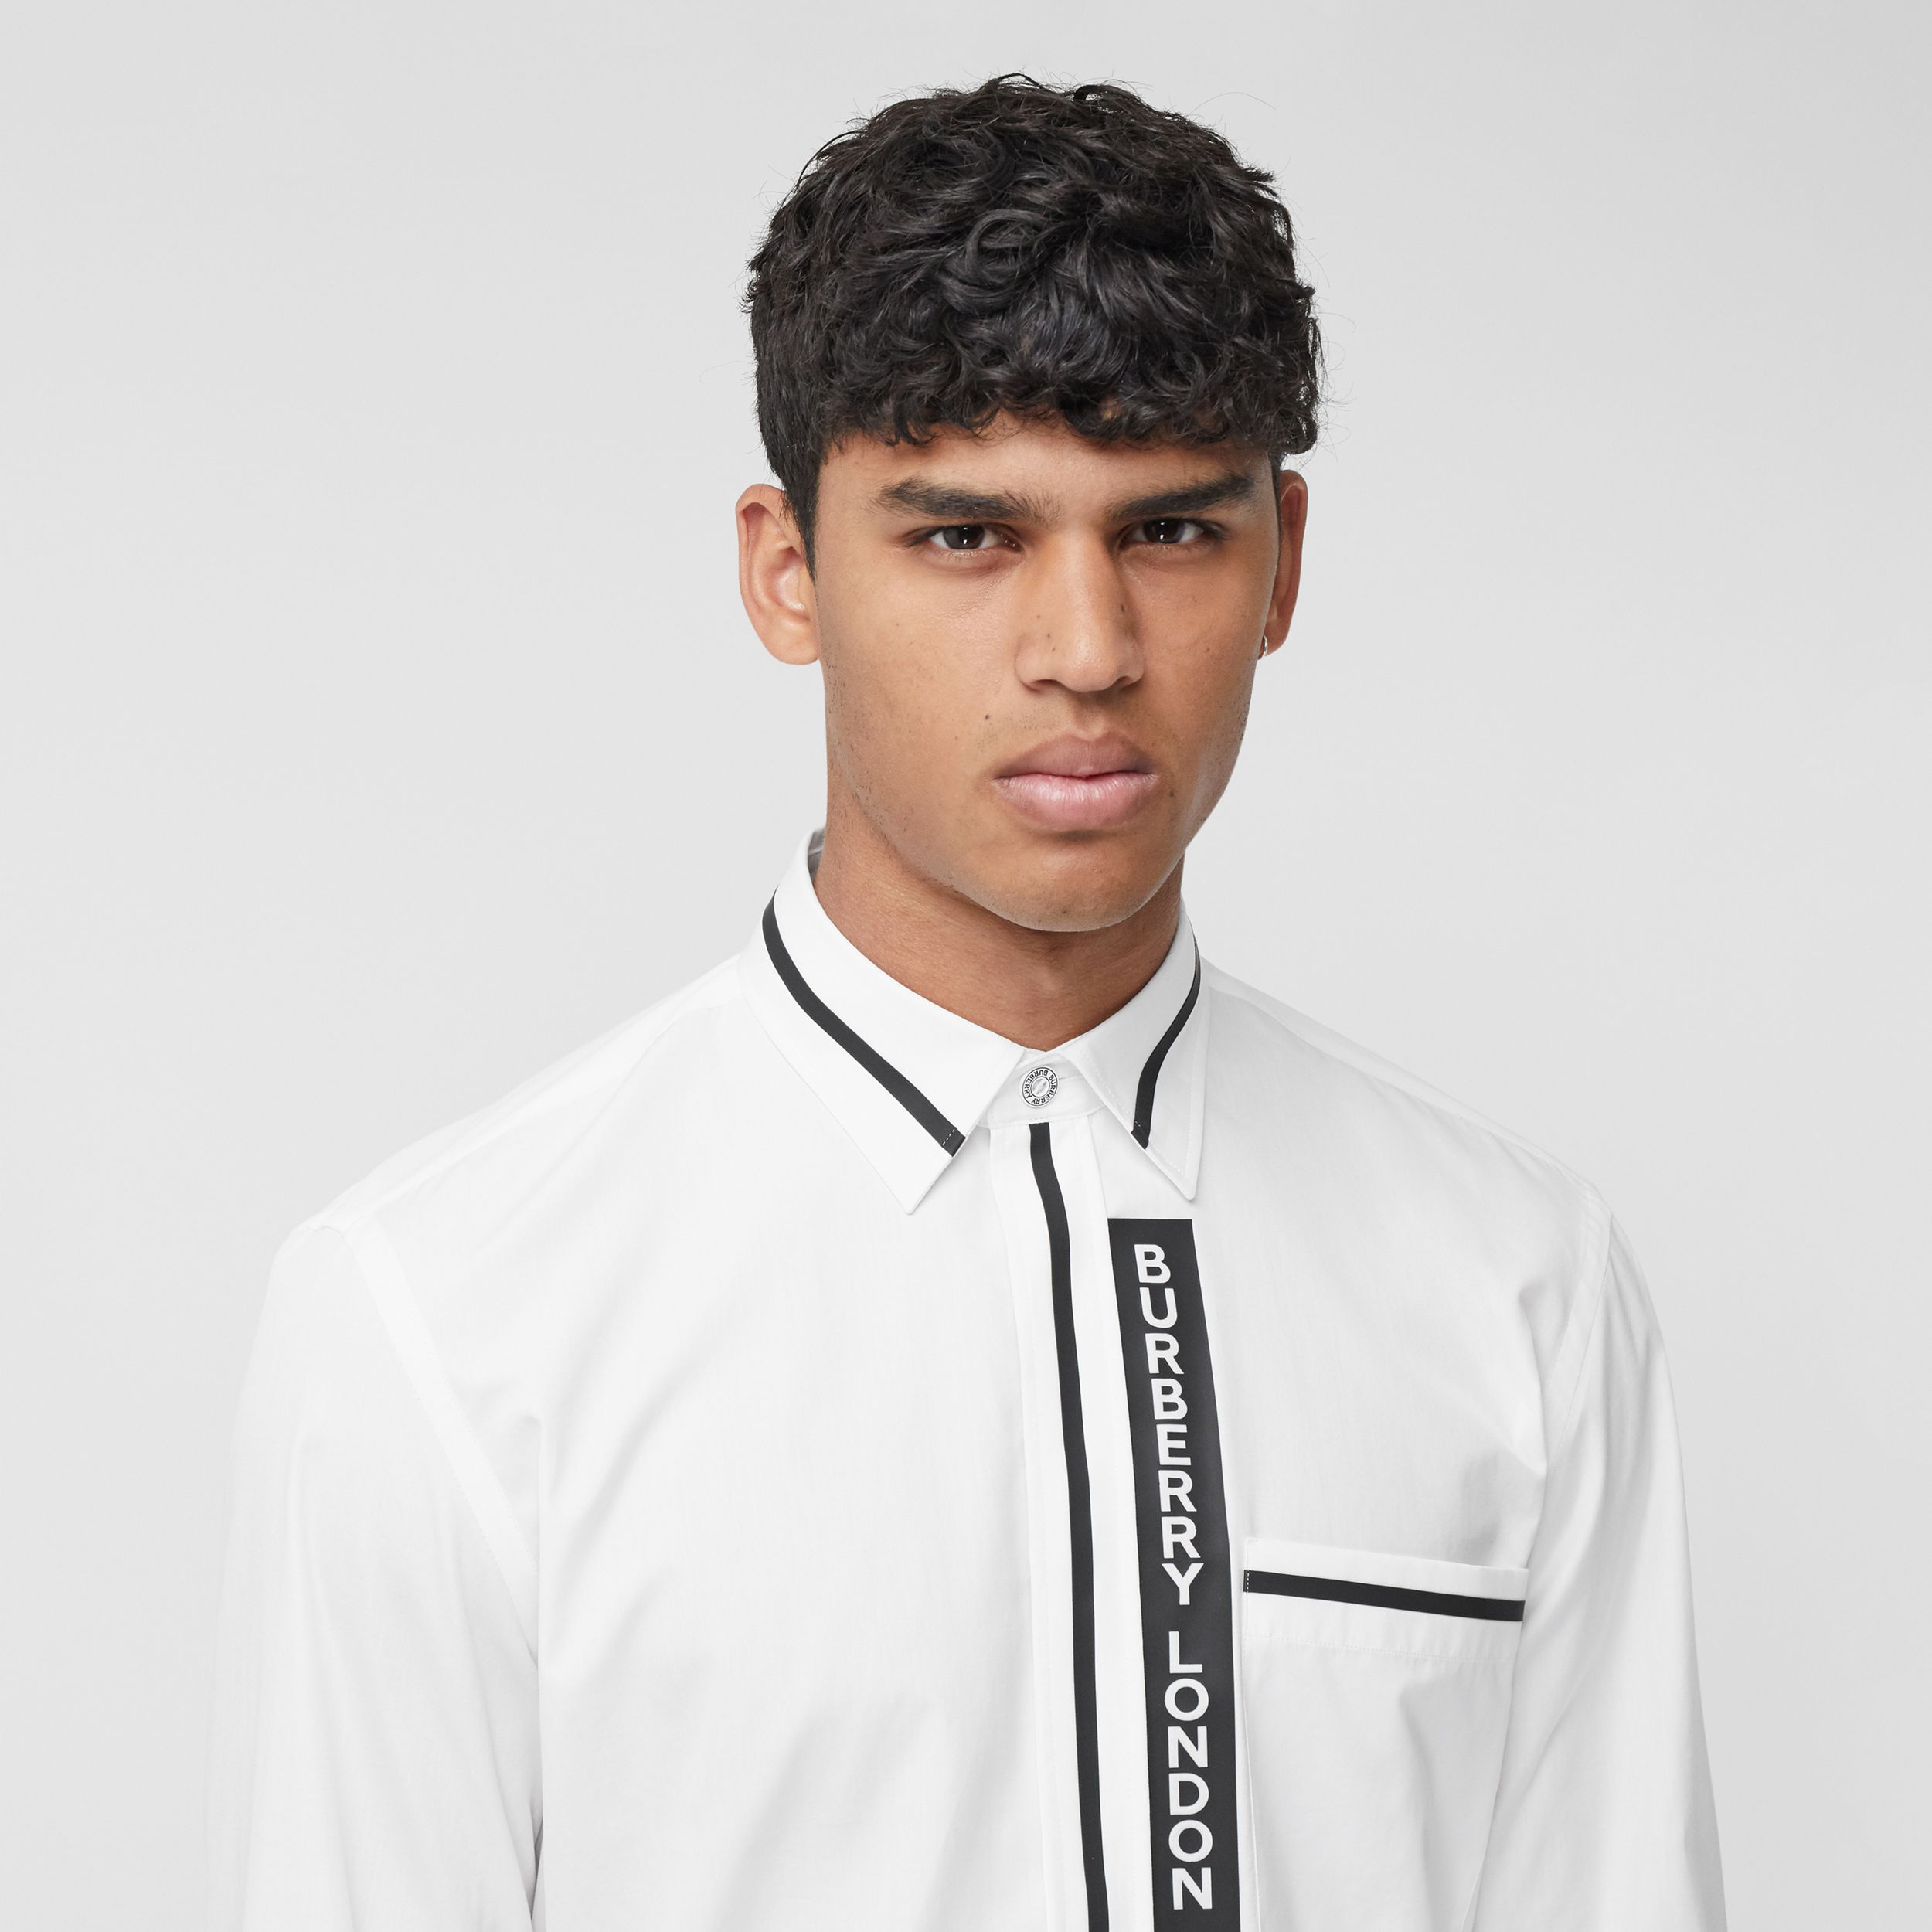 Logo Appliqué Cotton Poplin Shirt in Optic White - Men | Burberry - 2